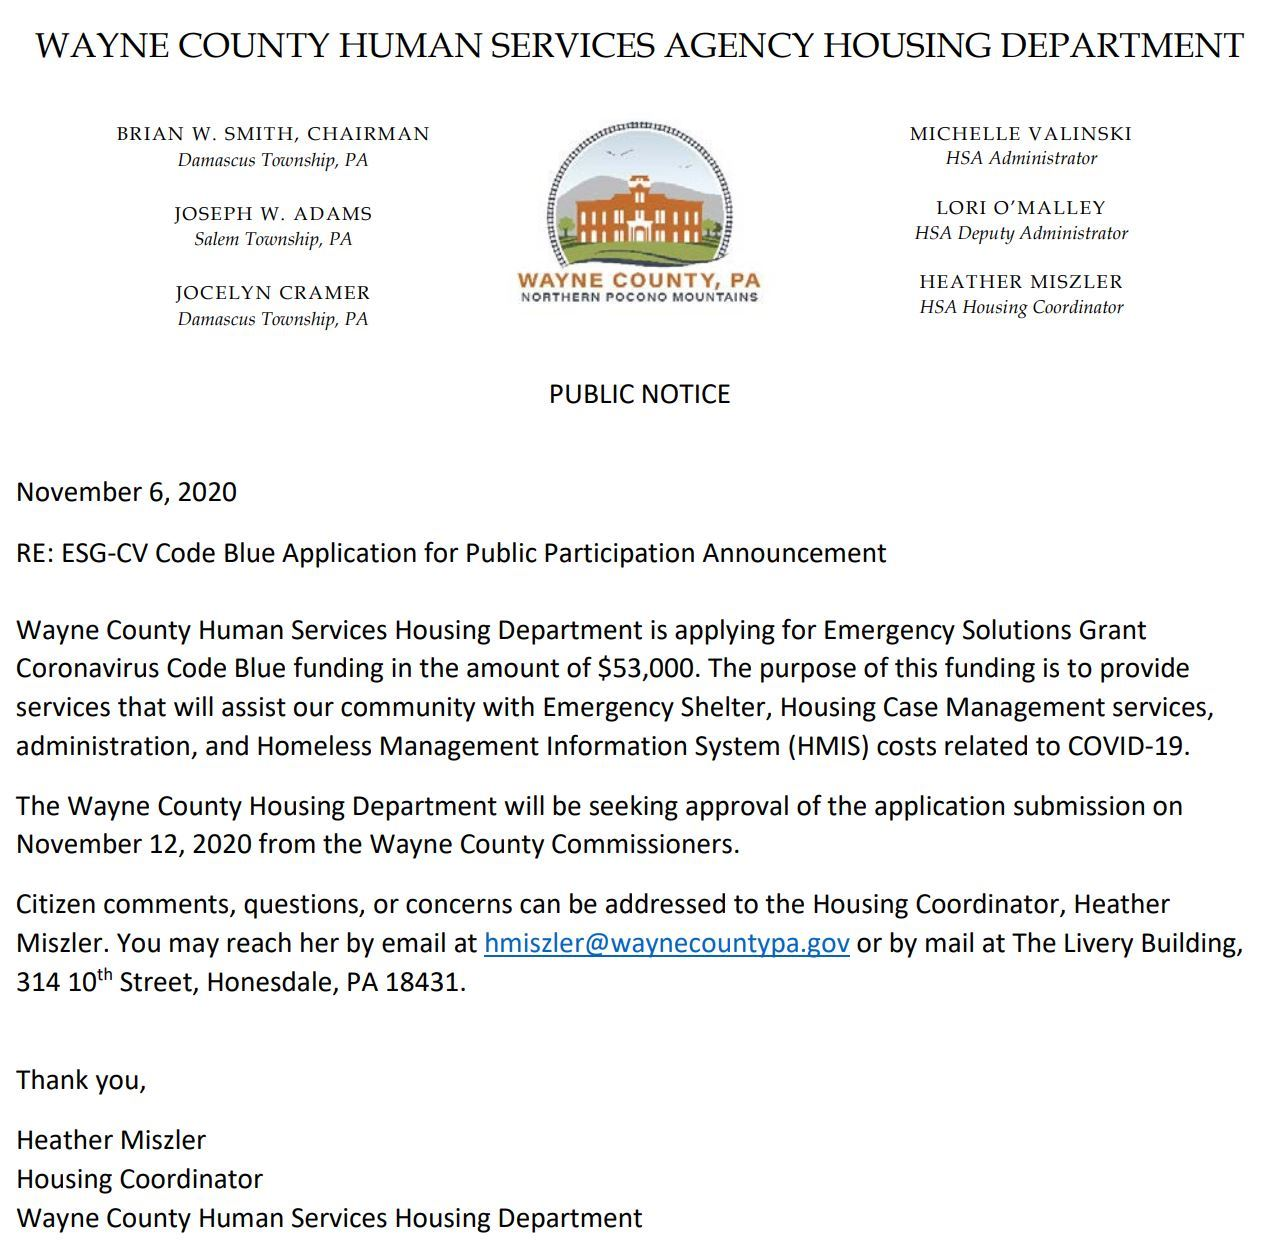 An image of a letter seeking public comment on the Housing Unit Code Blue grant application.